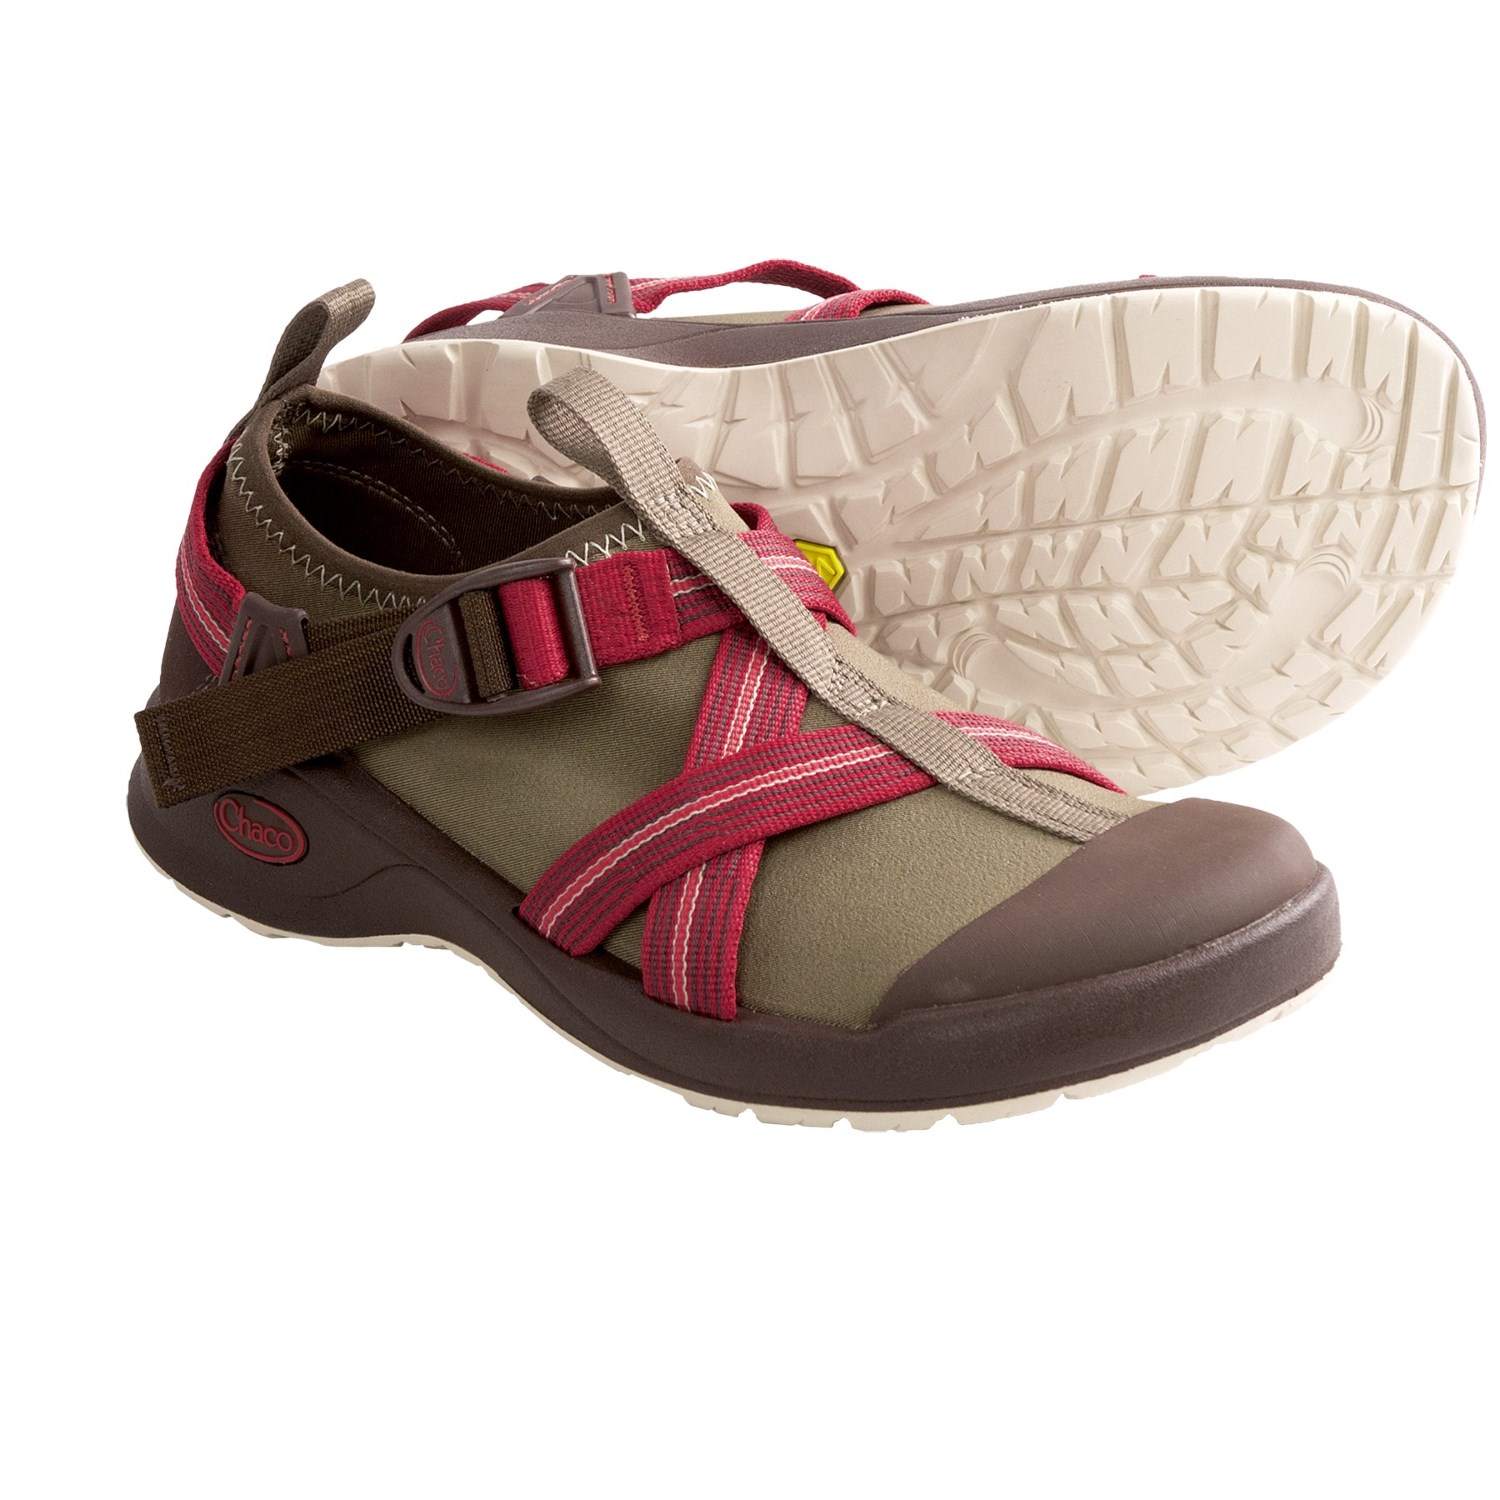 Outdoor Sandals & Shoes For Women - Shop Women's Outdoor Boots| Chaco